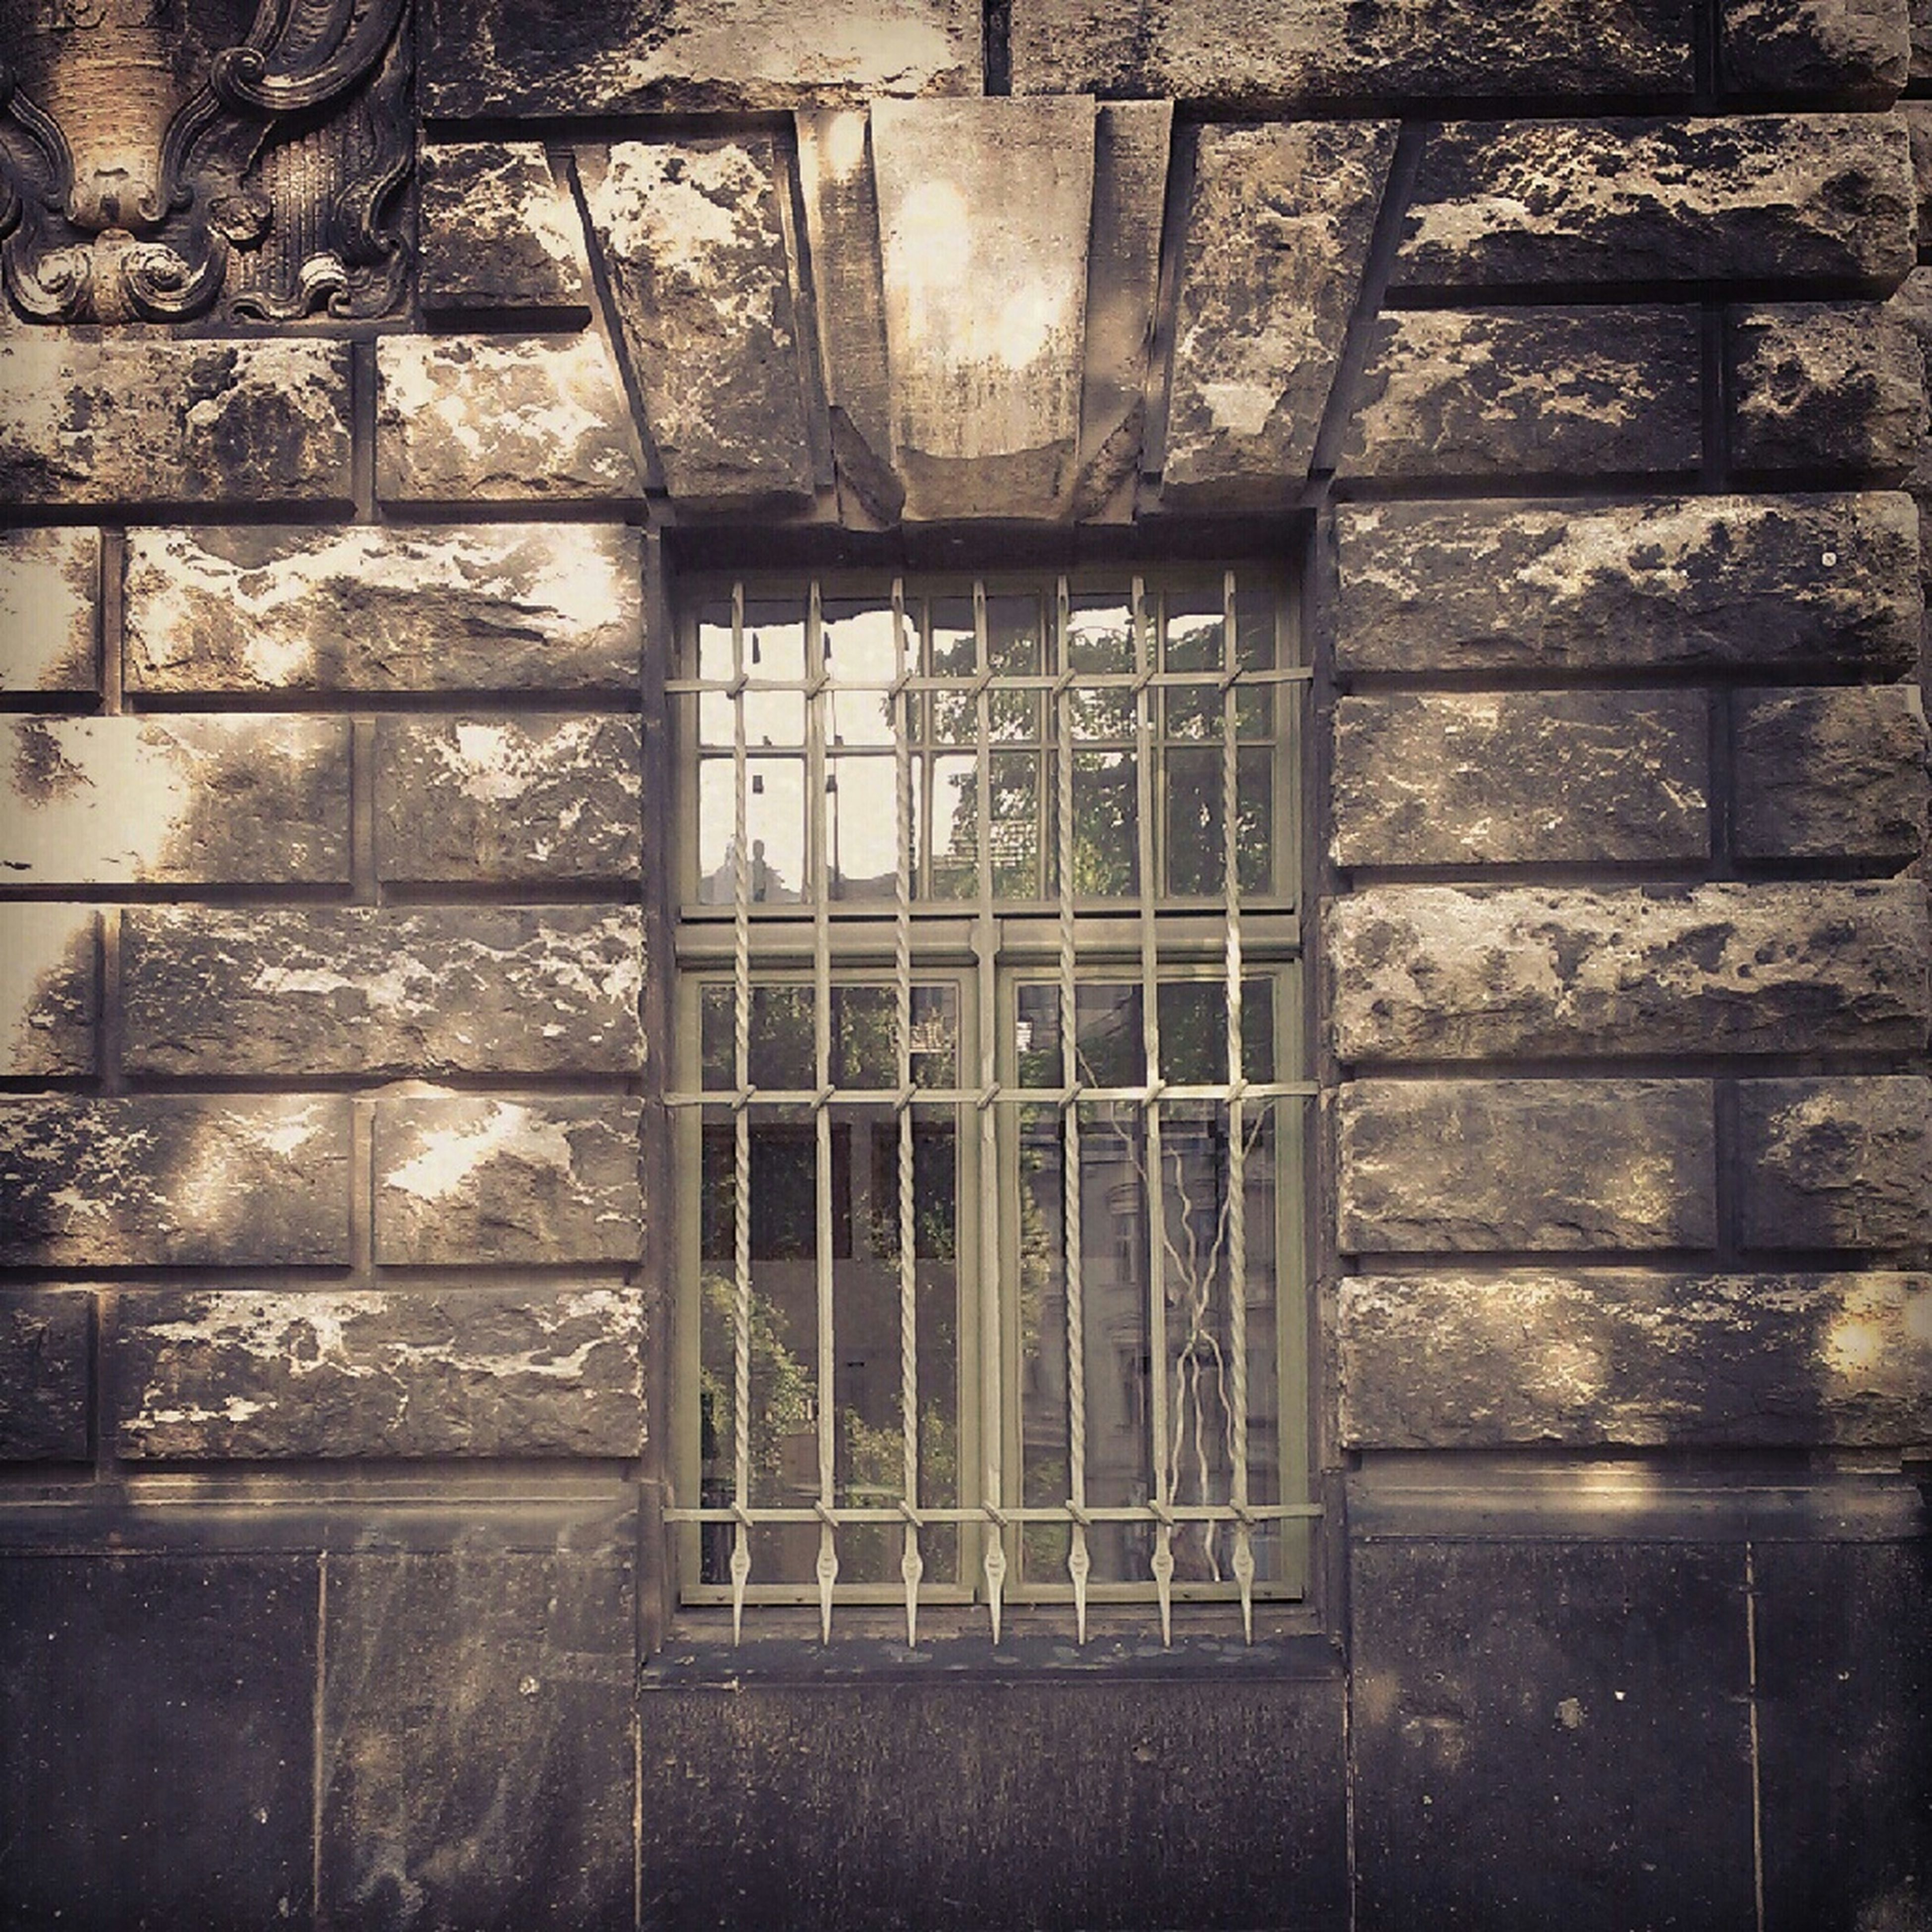 architecture, built structure, window, building exterior, brick wall, wall - building feature, old, full frame, pattern, damaged, abandoned, backgrounds, wall, weathered, no people, day, deterioration, textured, close-up, building